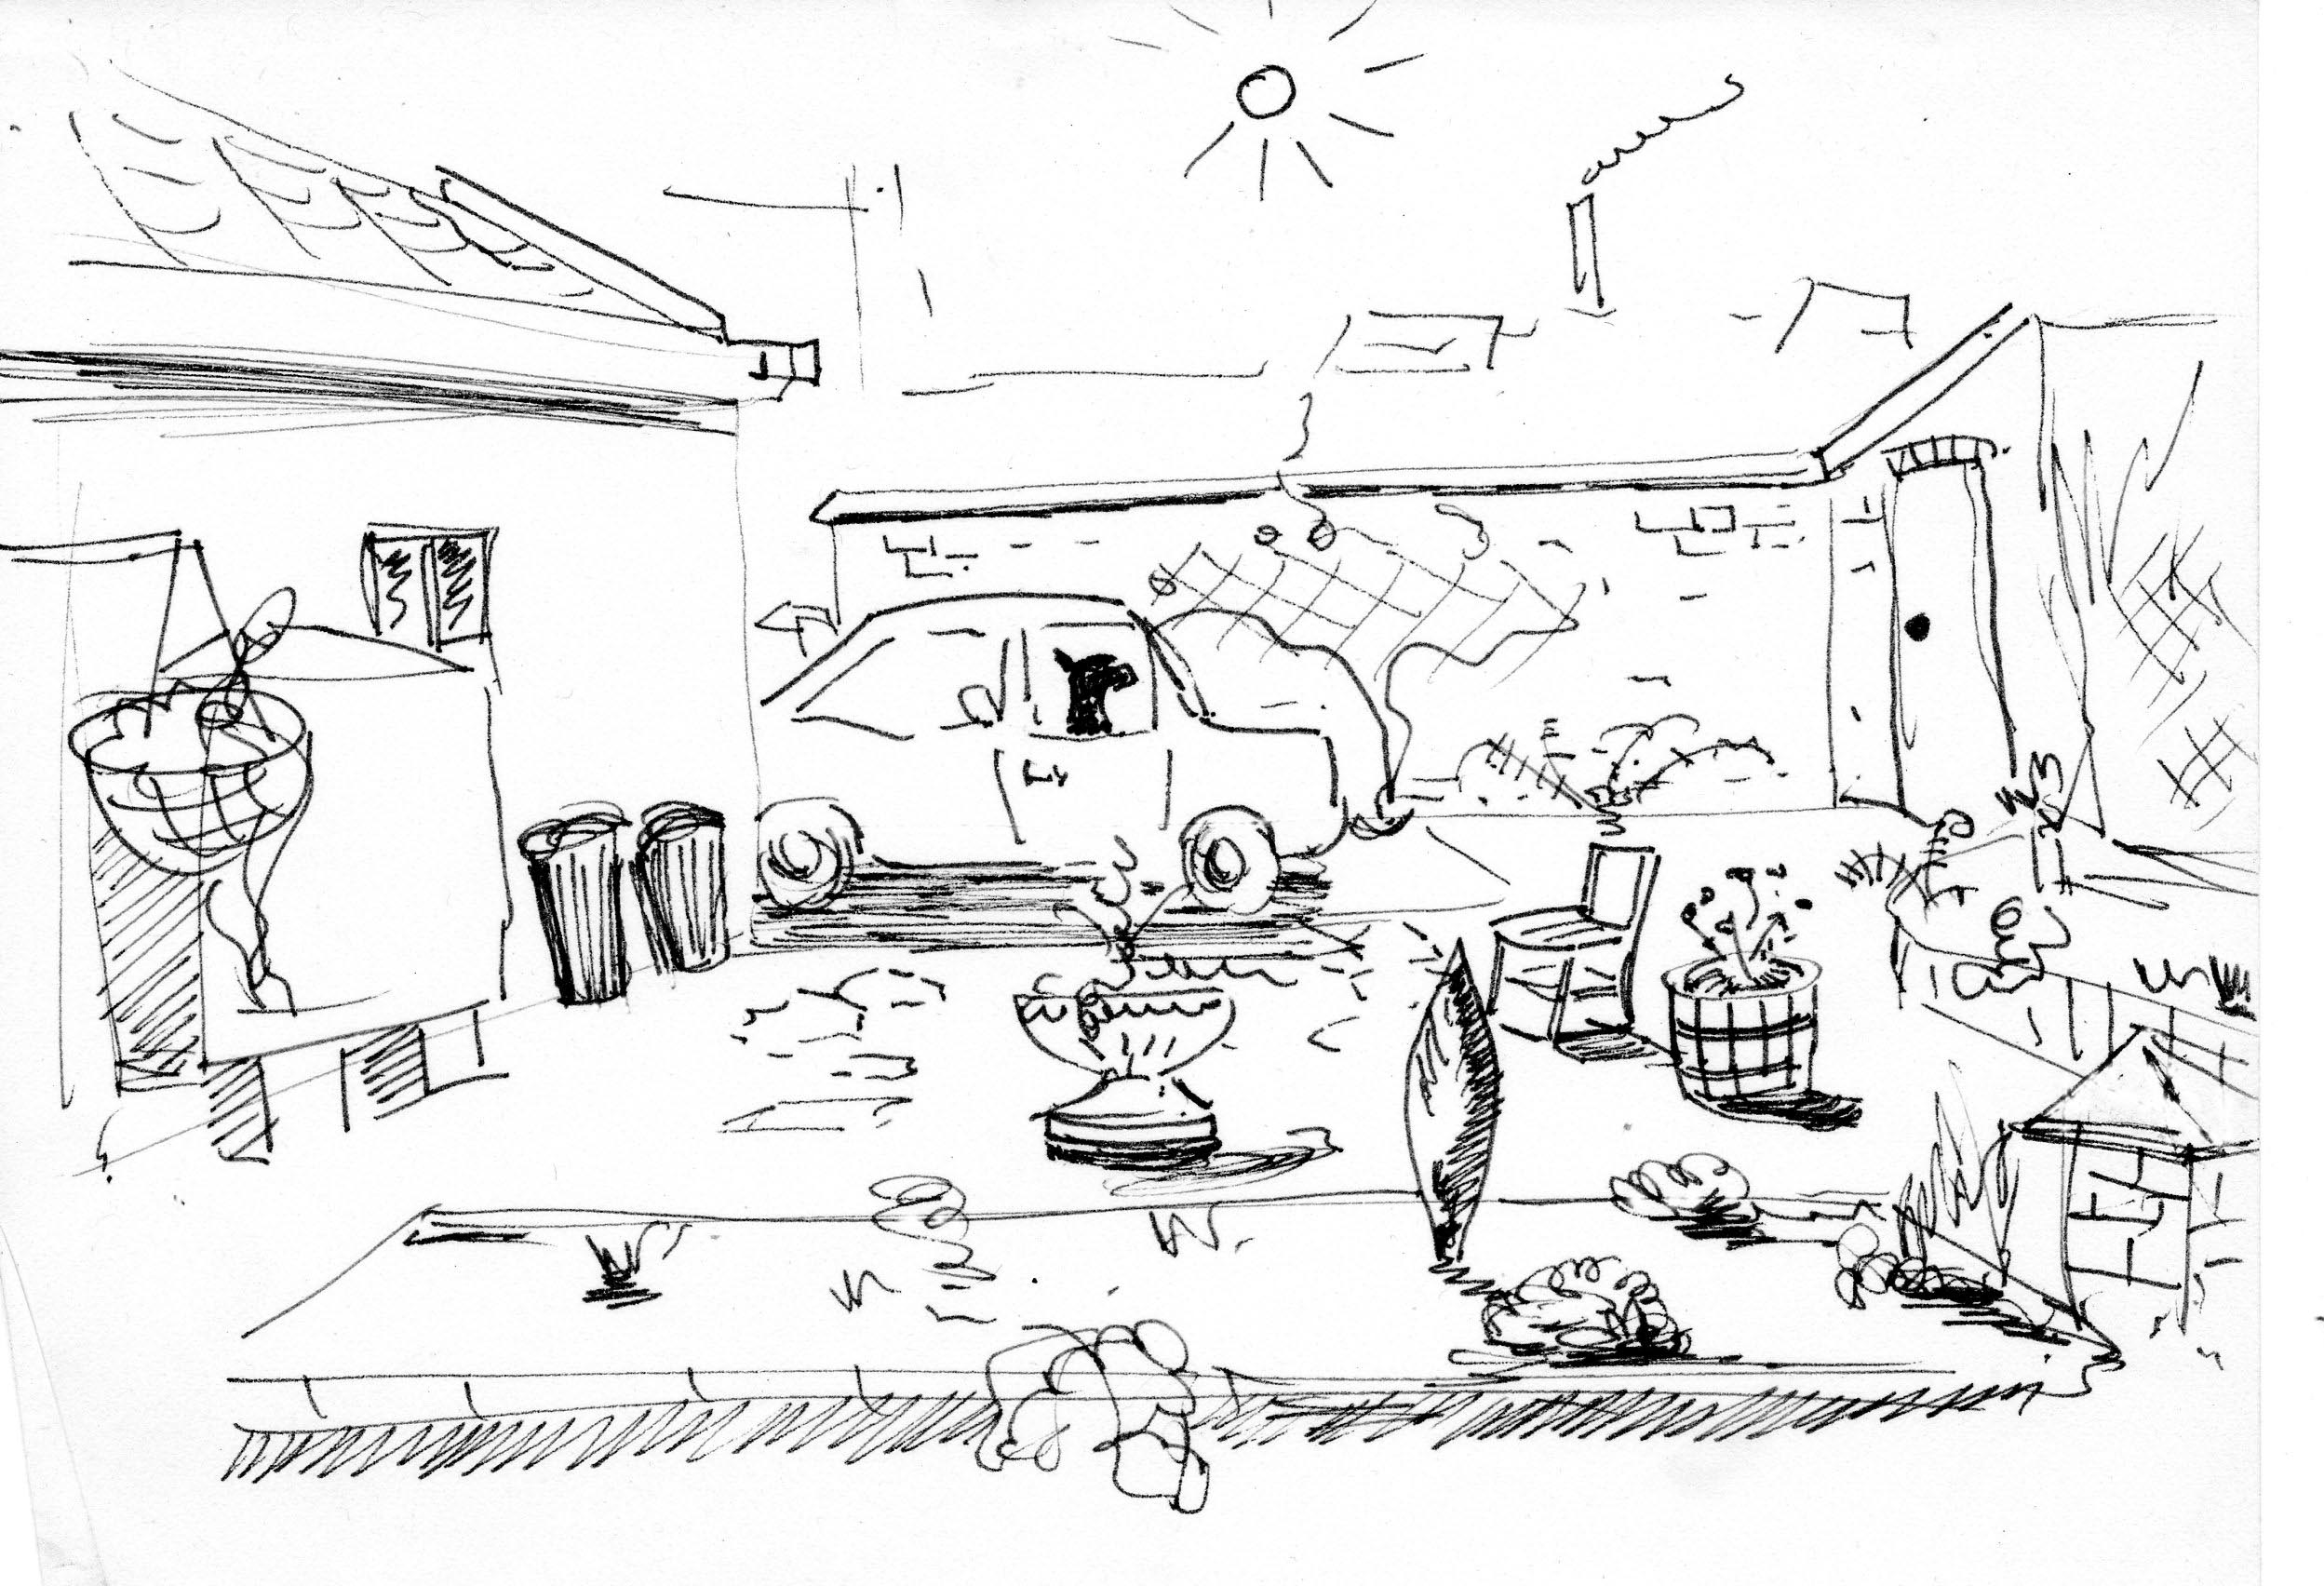 joemasonspage the blog for memories of east anglia page 77 Bakelite Furniture Handles an oasis of calm in the city centre this drawing was made in about 1980 with my dog fido sitting in my fiat 127 the yard was paved with hexagonal tiles